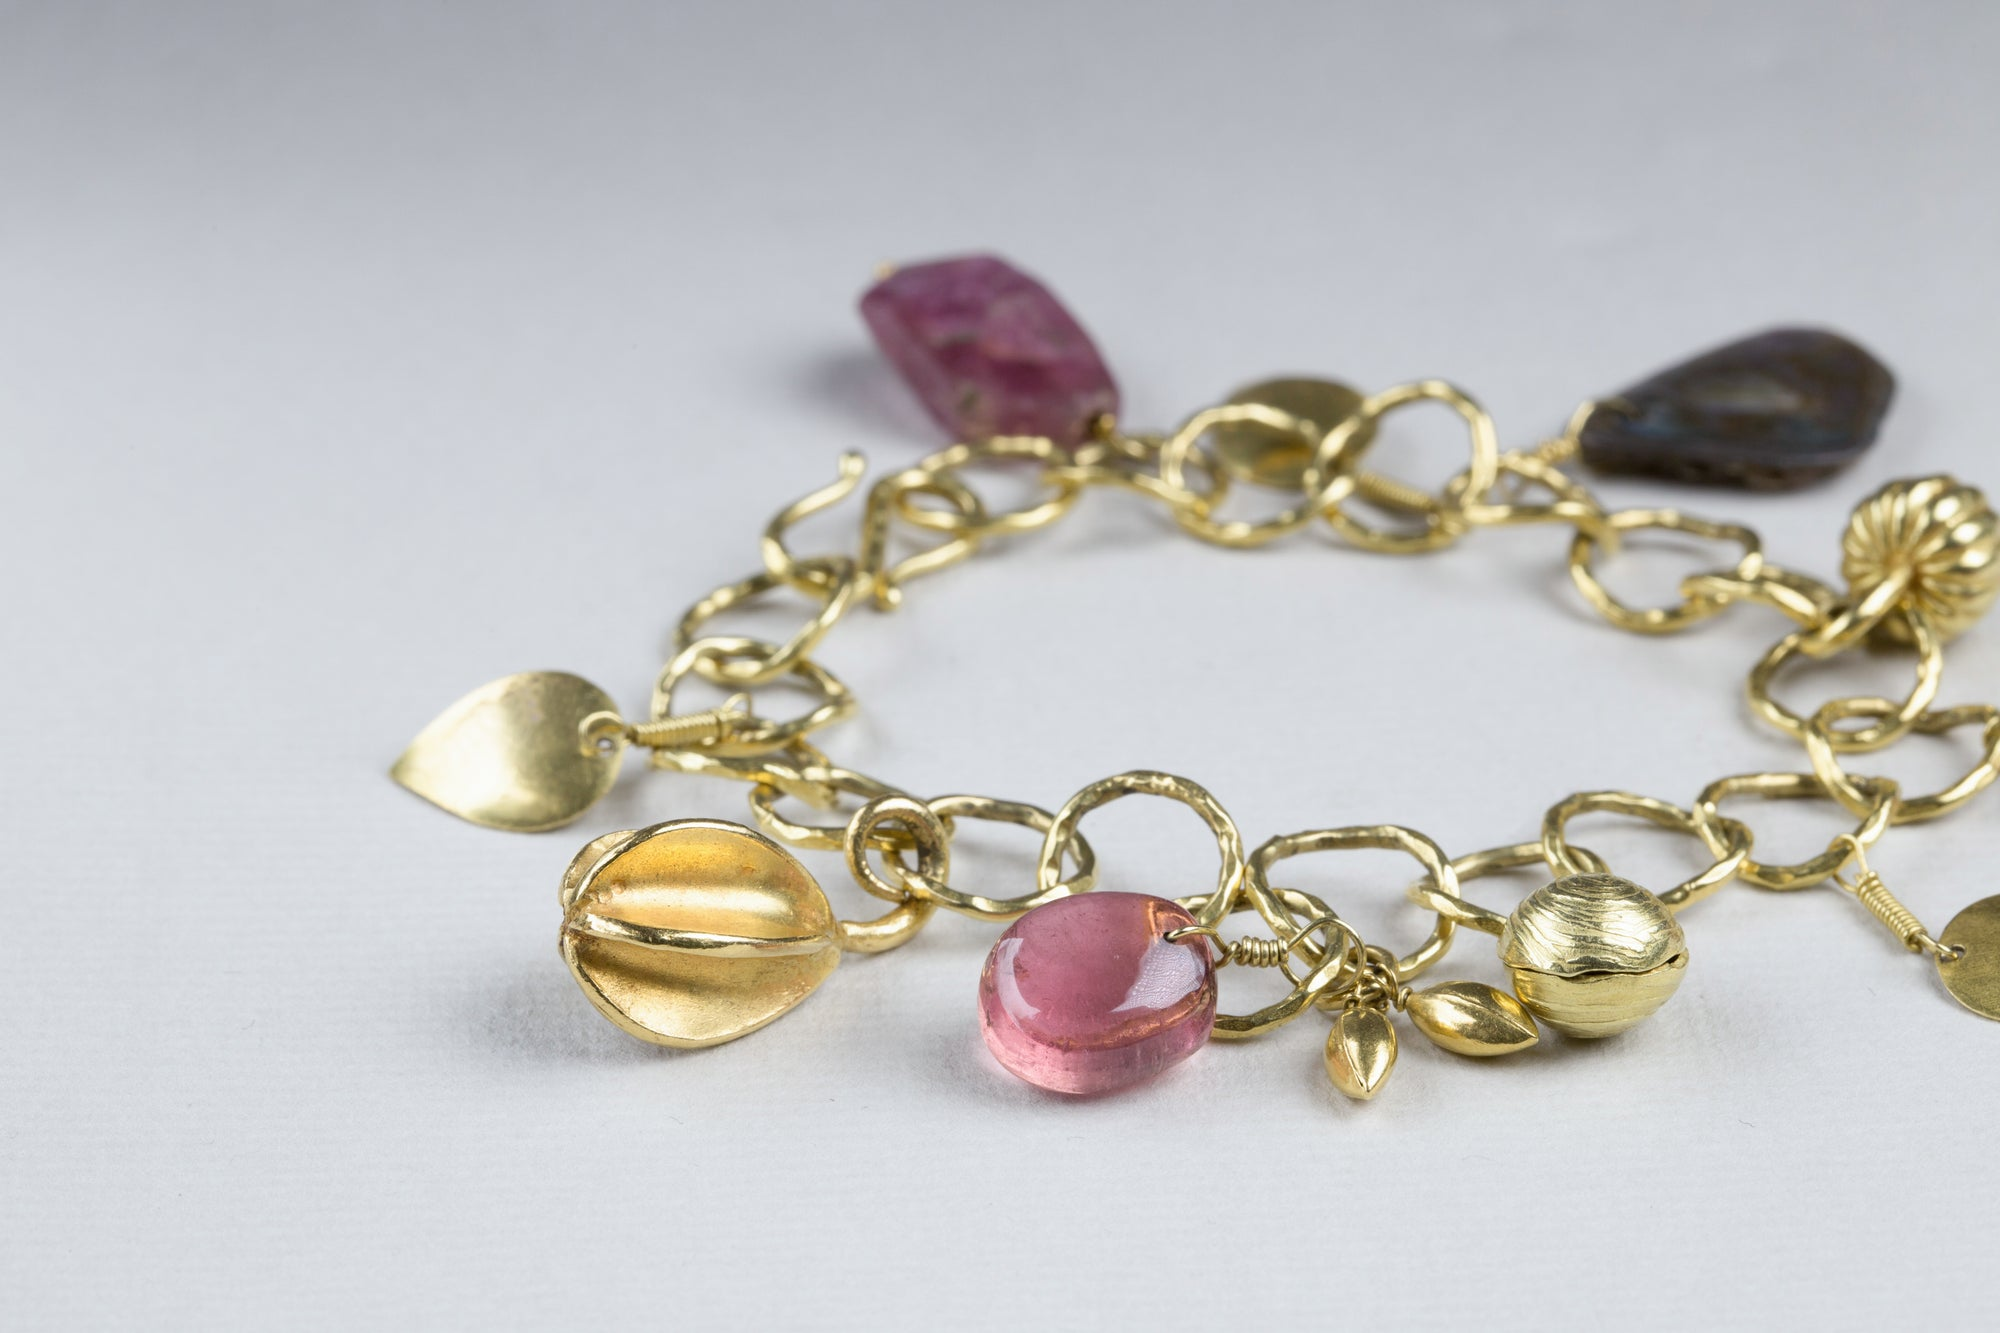 Gold Charm Bracelet with Pink Tourmaline